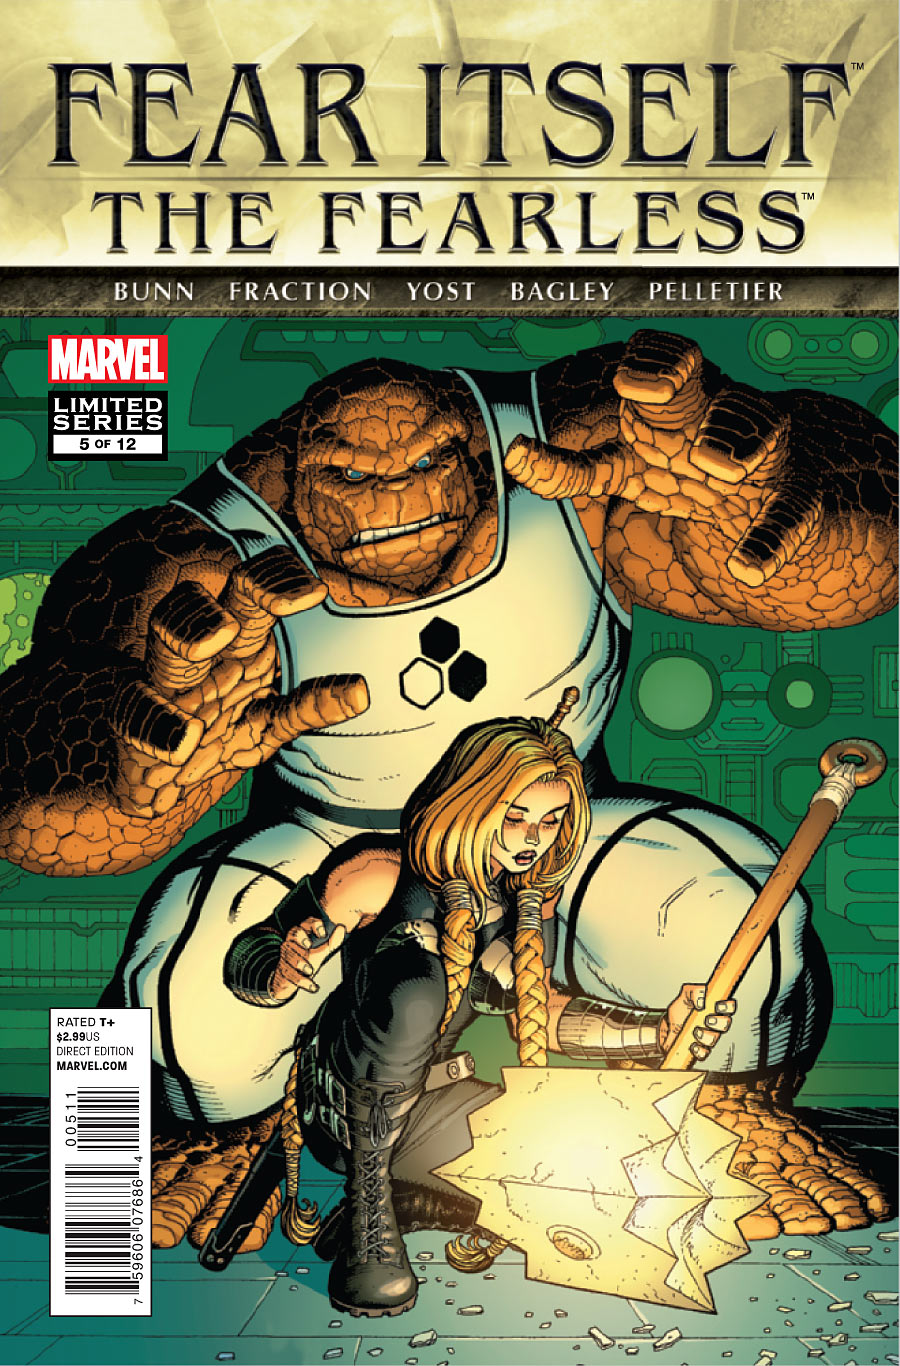 Fear Itself: The Fearless Vol 1 5 - Marvel Comics Database